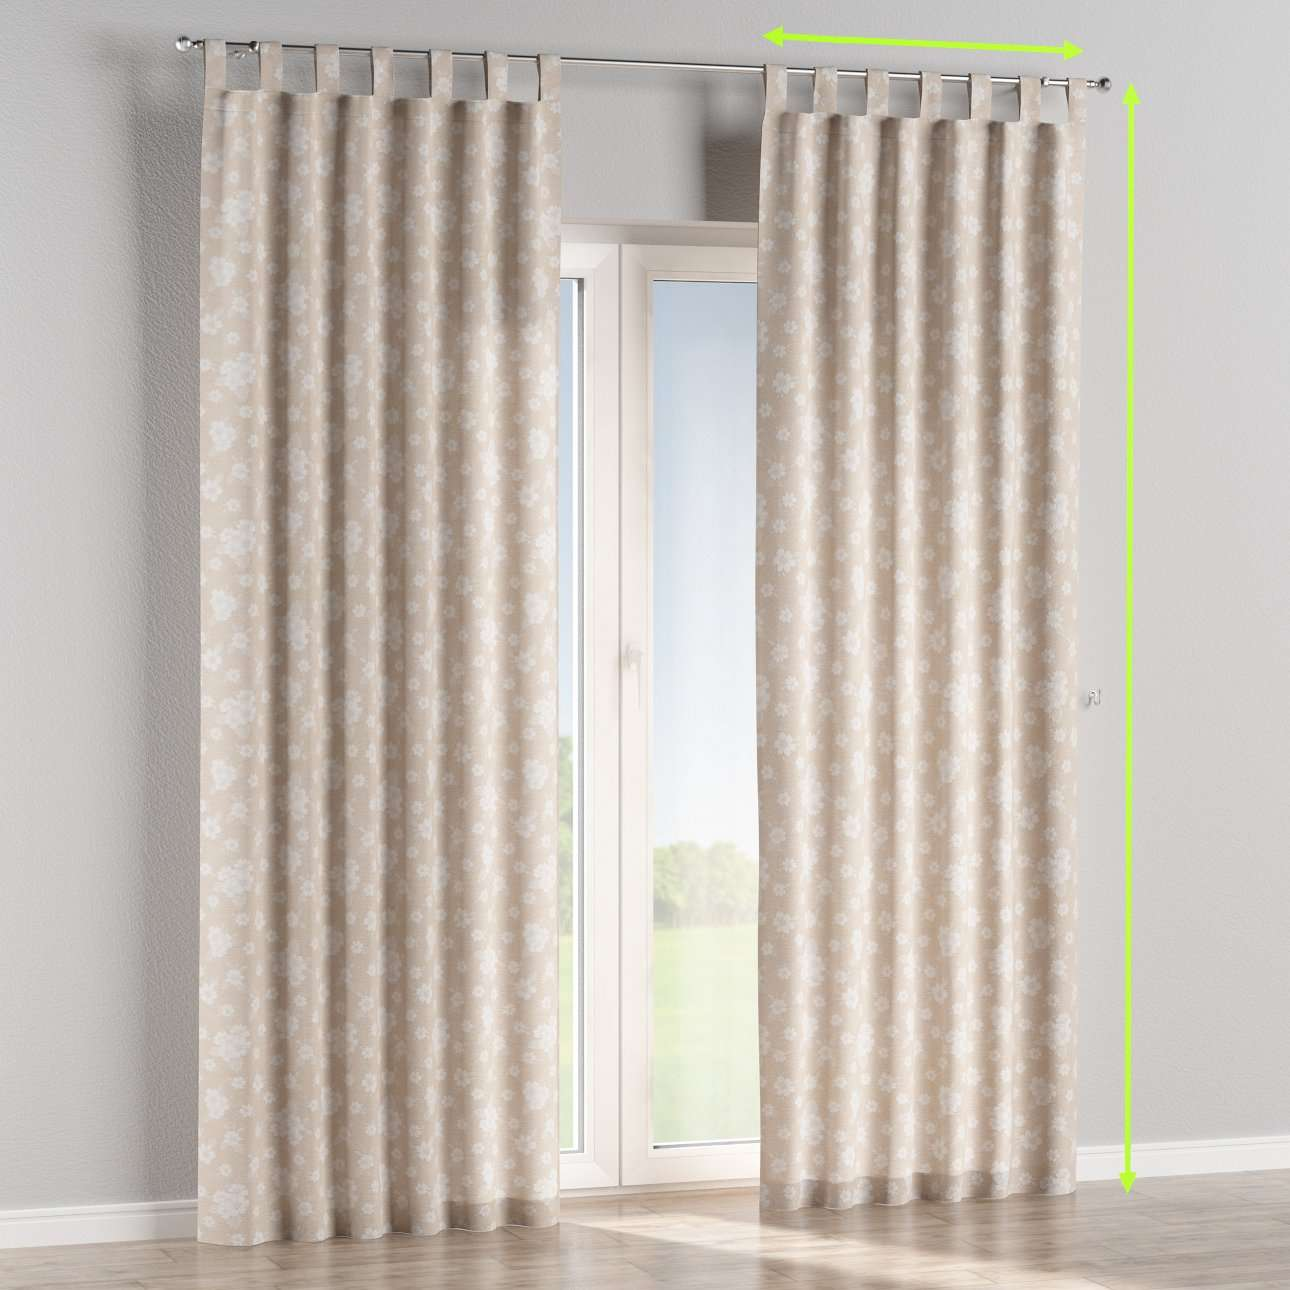 Tab top curtains in collection Rustica, fabric: 138-26